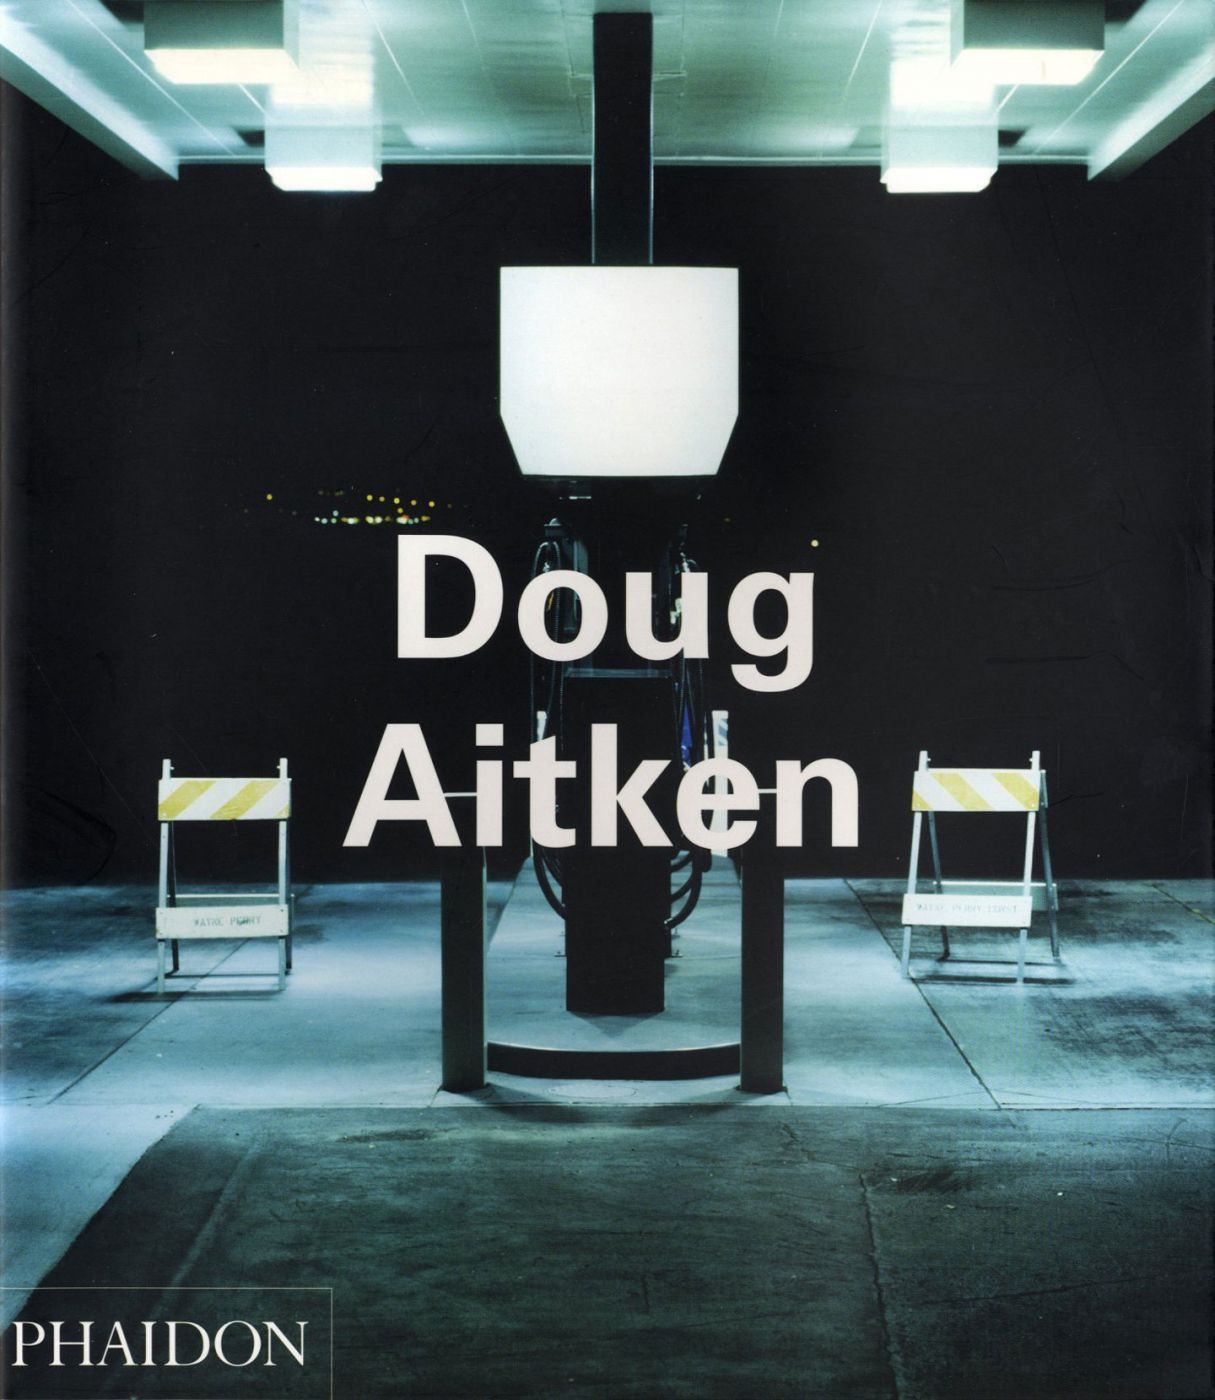 Doug Aitken Phaidon Contemporary Series by Doug AITKEN, Jorges Luis,  BORGES, Jörg, HEISER, Daniel on Vincent Borrelli, Bookseller